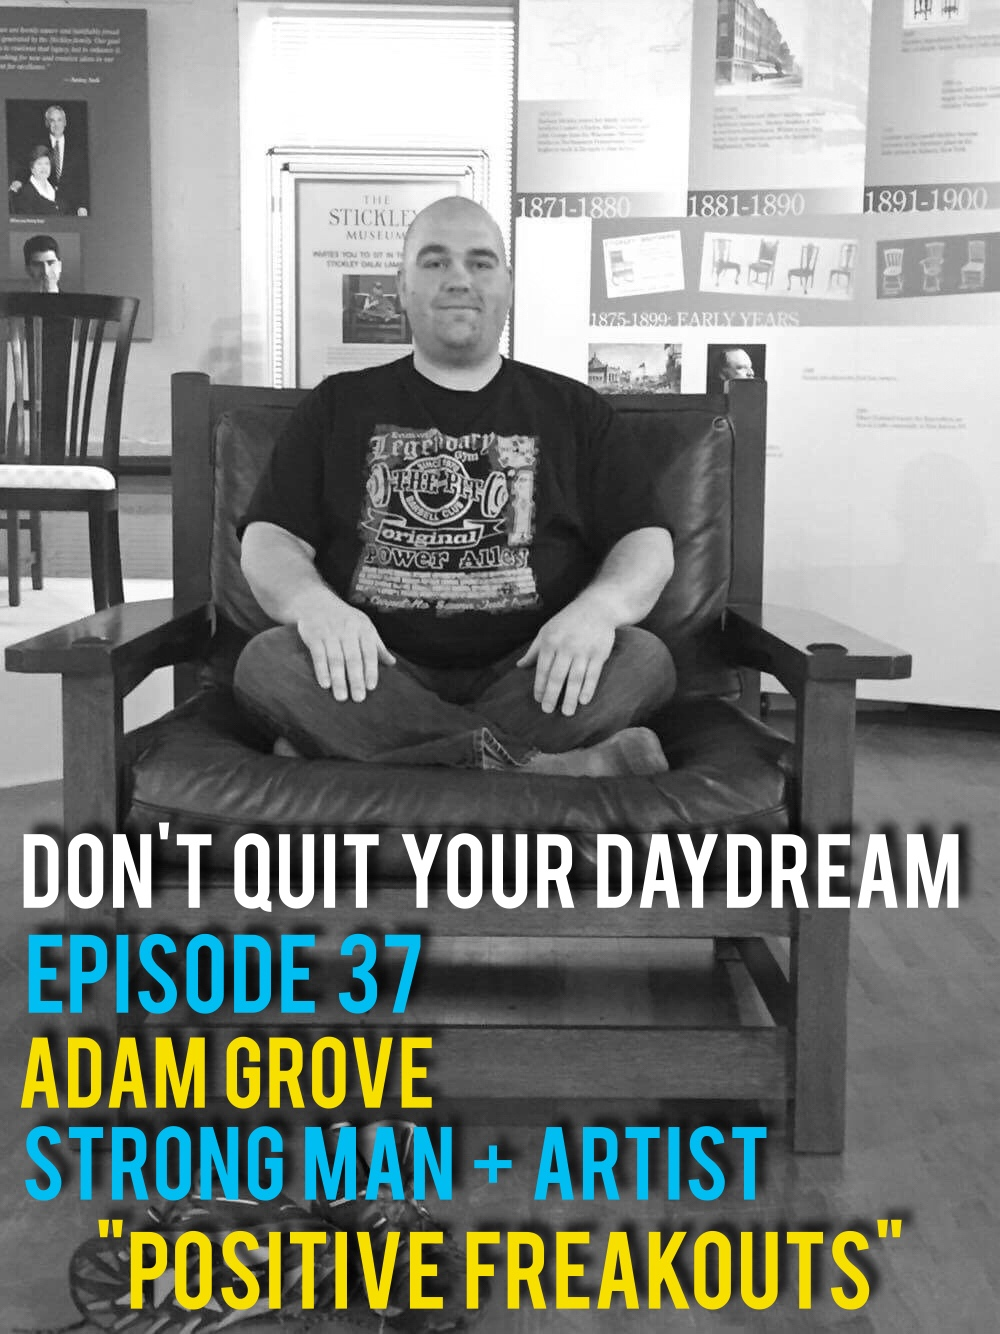 "Episode 37 we sit down with talented artist and acclaimed strong man, Adam Grove! If you were forced to classify Adam into one group it would be impossible. From a stint as a prison guard to spending time in a yoga studio, he has done it all. We discuss trying things outside your element and how having a freak out isn't necessarily a bad thing. Catch Adam's art by checking out his Instagram  https://www.instagram.com/adamgrove_evv/  or by visiting the Evansville Museum's 58th Mid States Art Exhibition which opens up on Dec.11th      Song of the Week is ""Same Things"" from our very own Farrin Davis!"